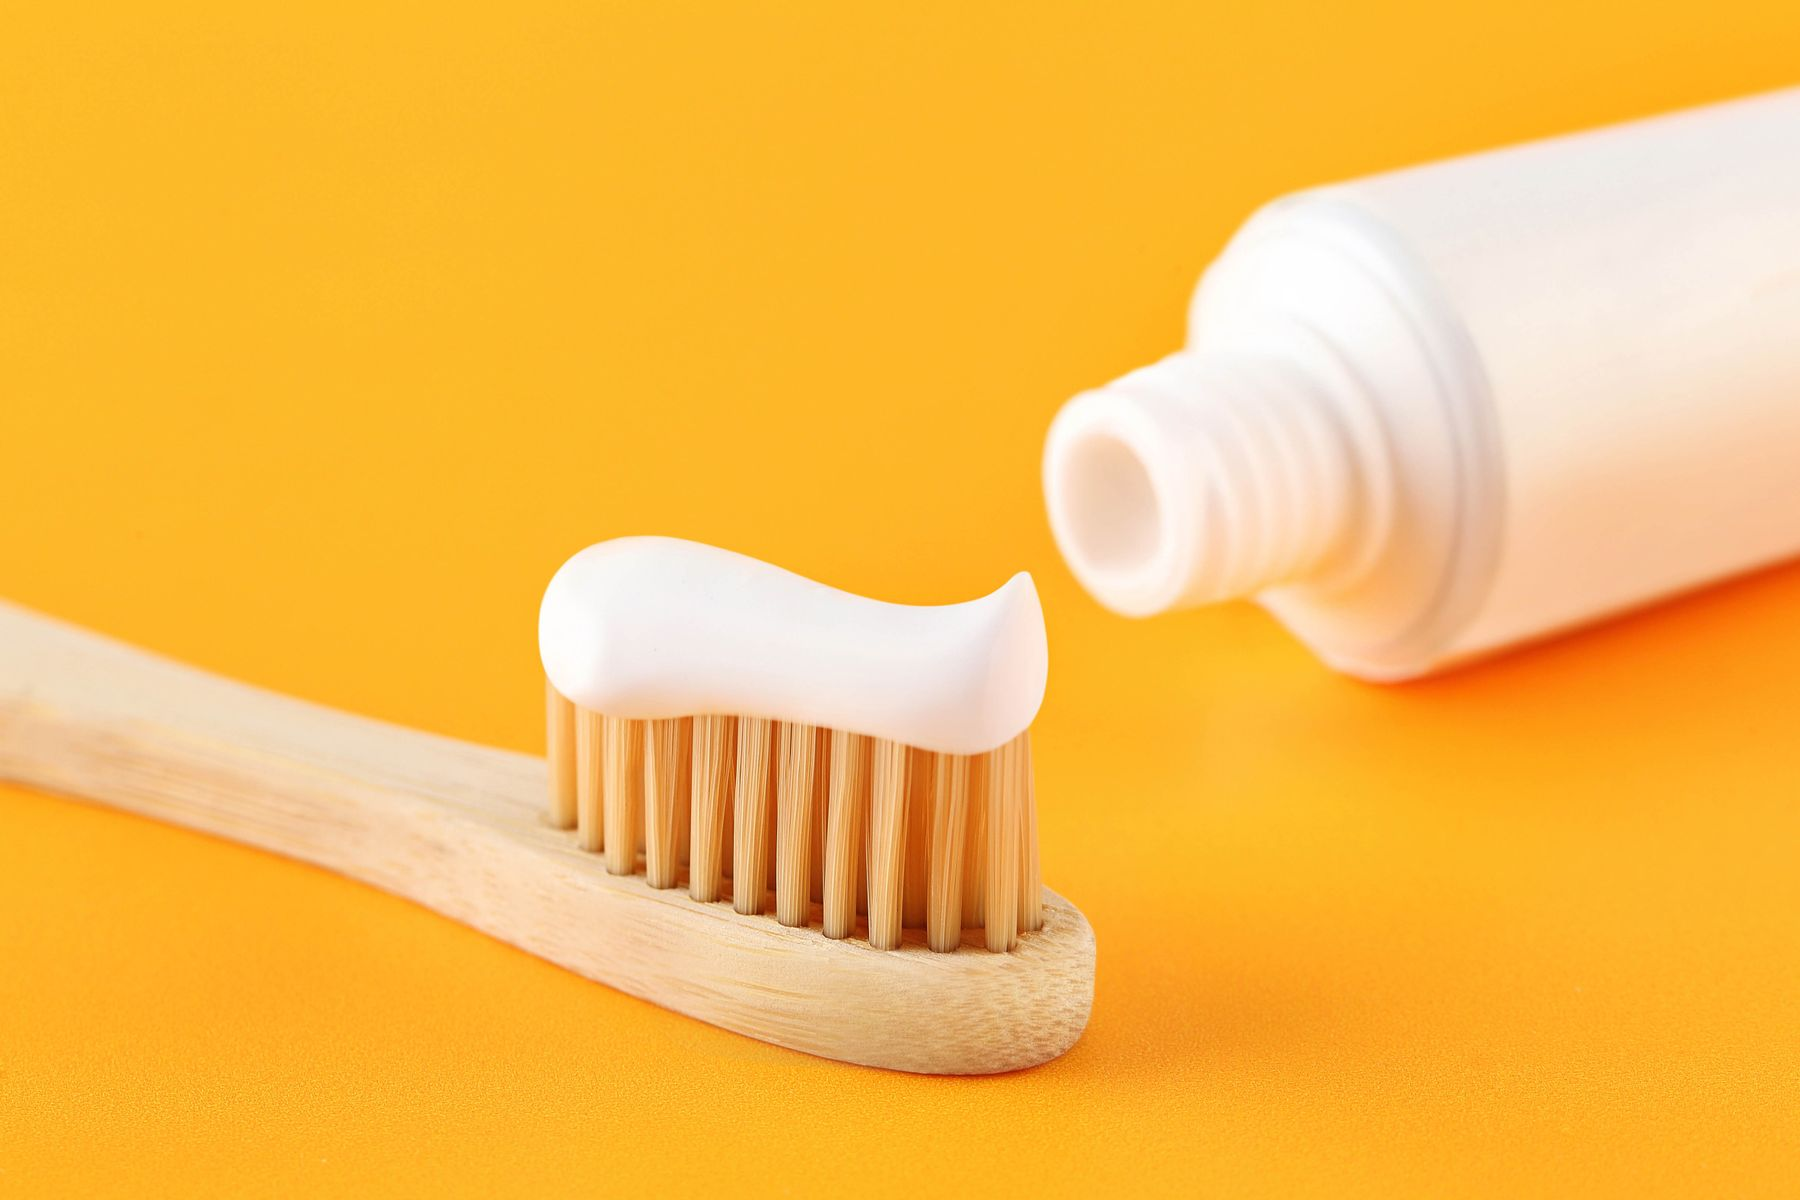 bamboo toothbrush with toothpaste on the top, toothpaste tube in the background